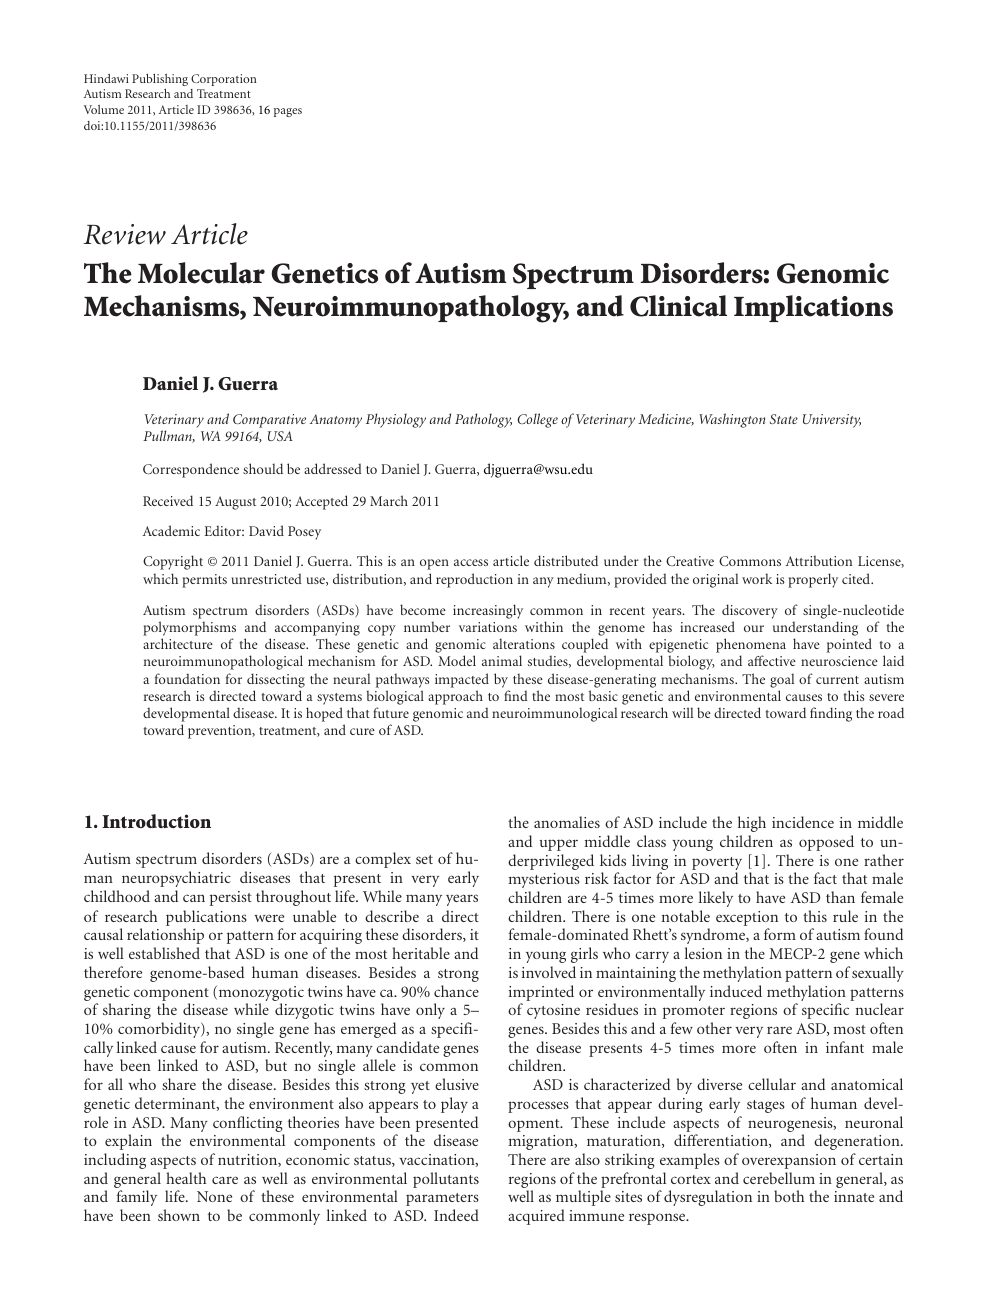 Genetics Plays Outsized Role In Autism >> The Molecular Genetics Of Autism Spectrum Disorders Genomic